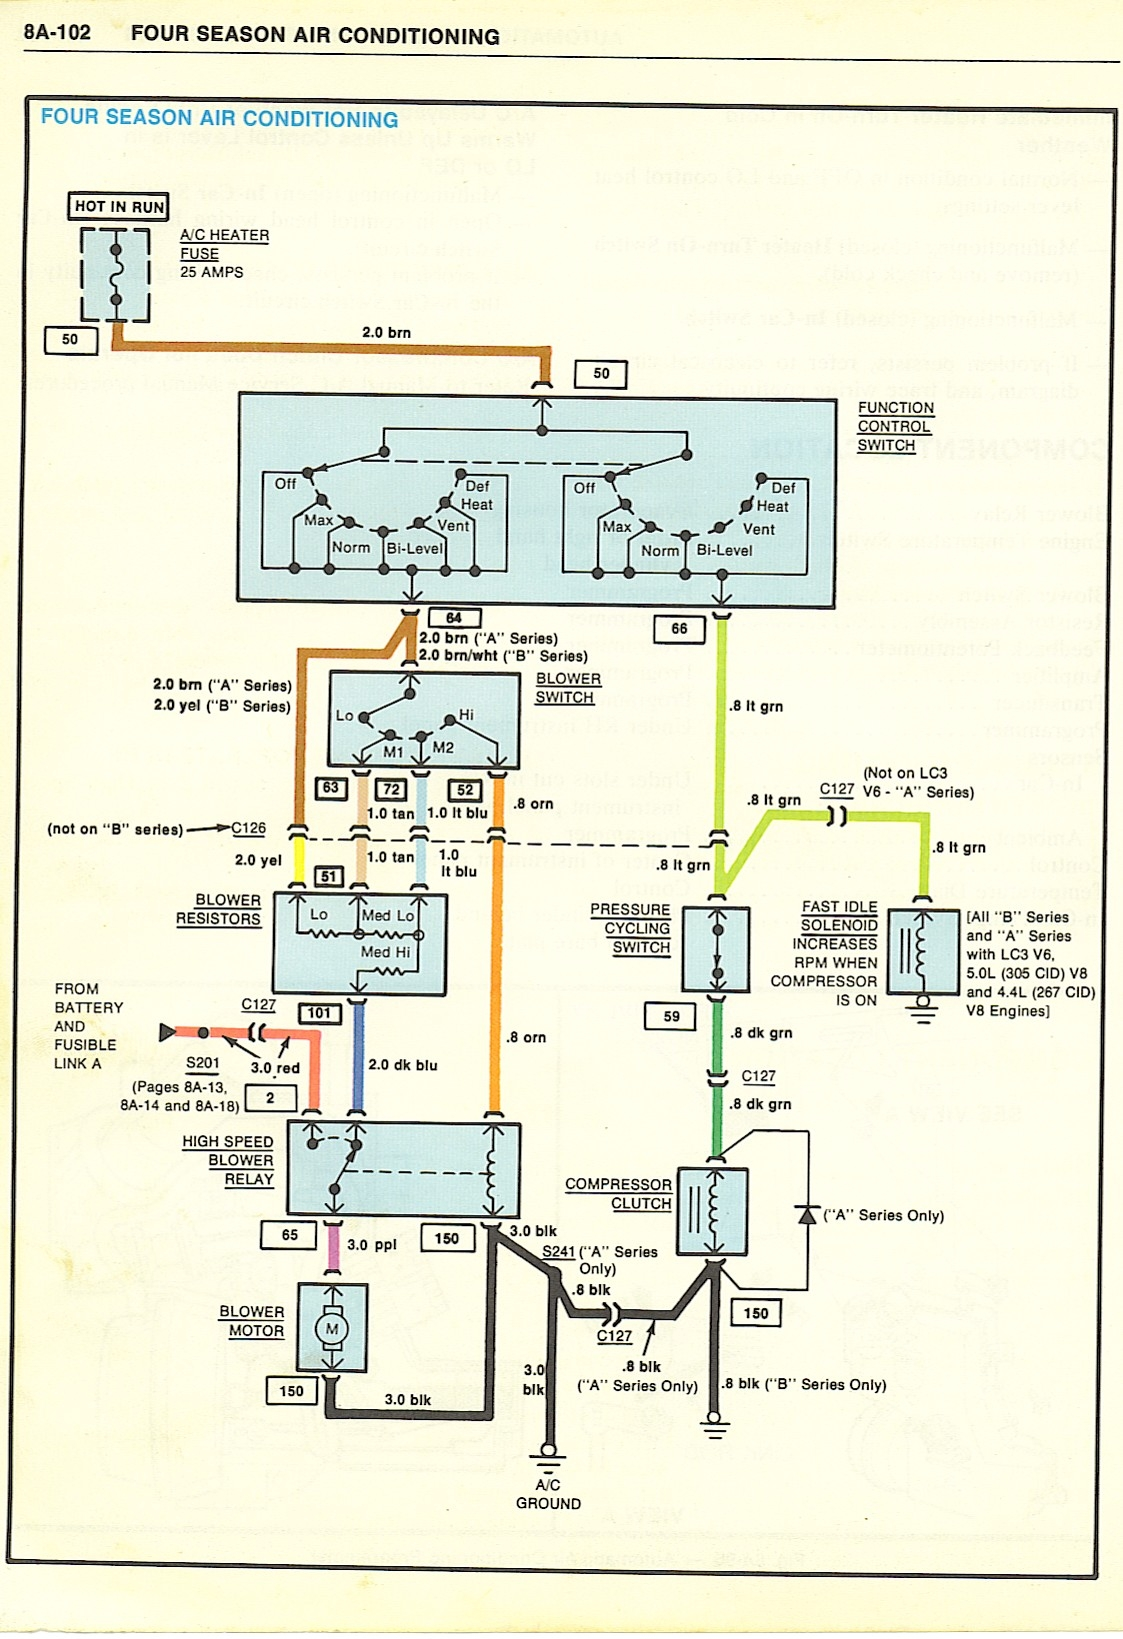 1970 chevelle heater ac wiring diagram wiring library. Black Bedroom Furniture Sets. Home Design Ideas